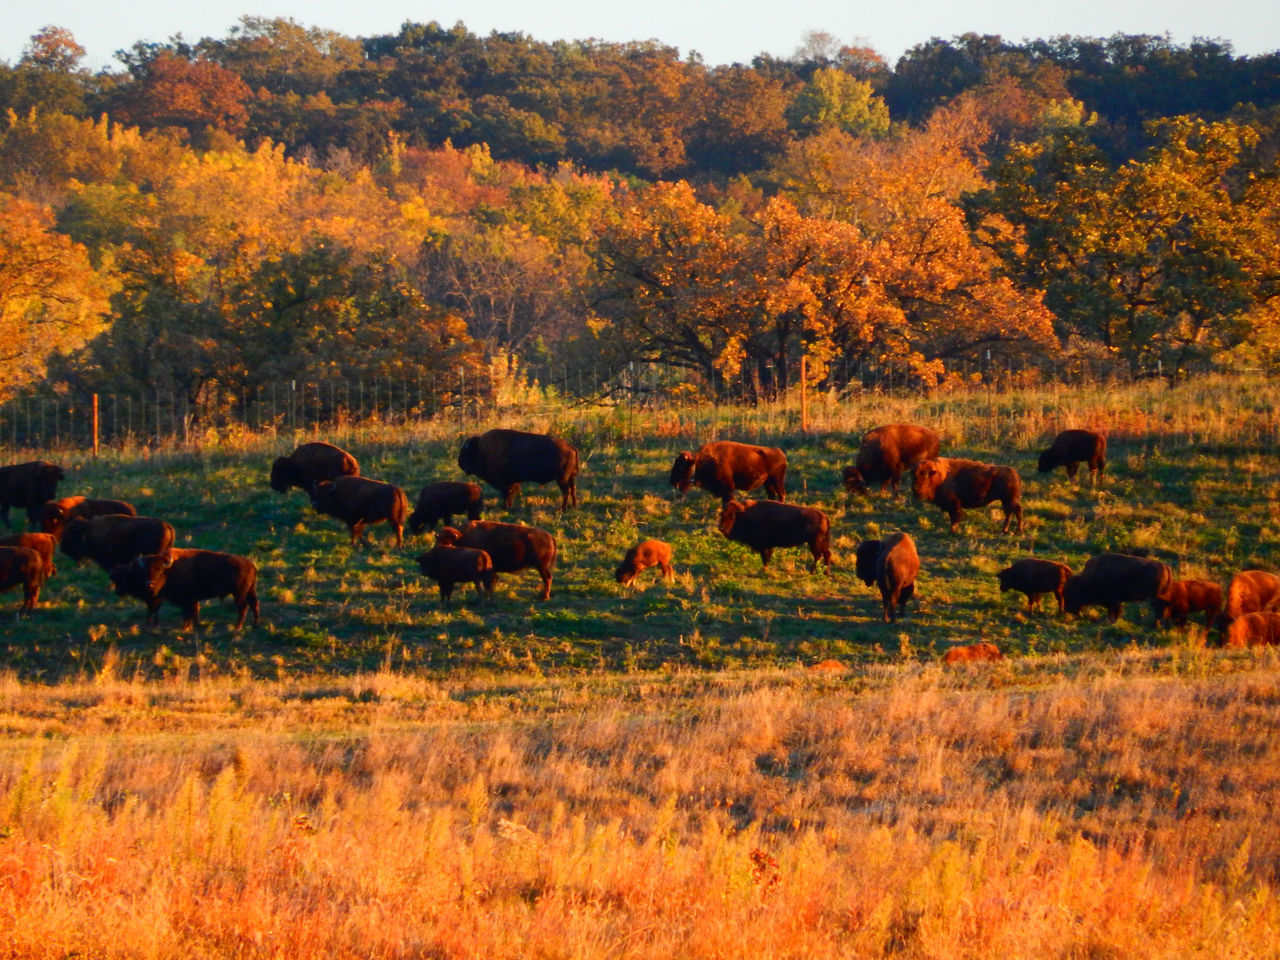 autumn, grass, tree, field, nature, large group of animals, landscape, grazing, no people, outdoors, animal themes, mammal, beauty in nature, day, american bison